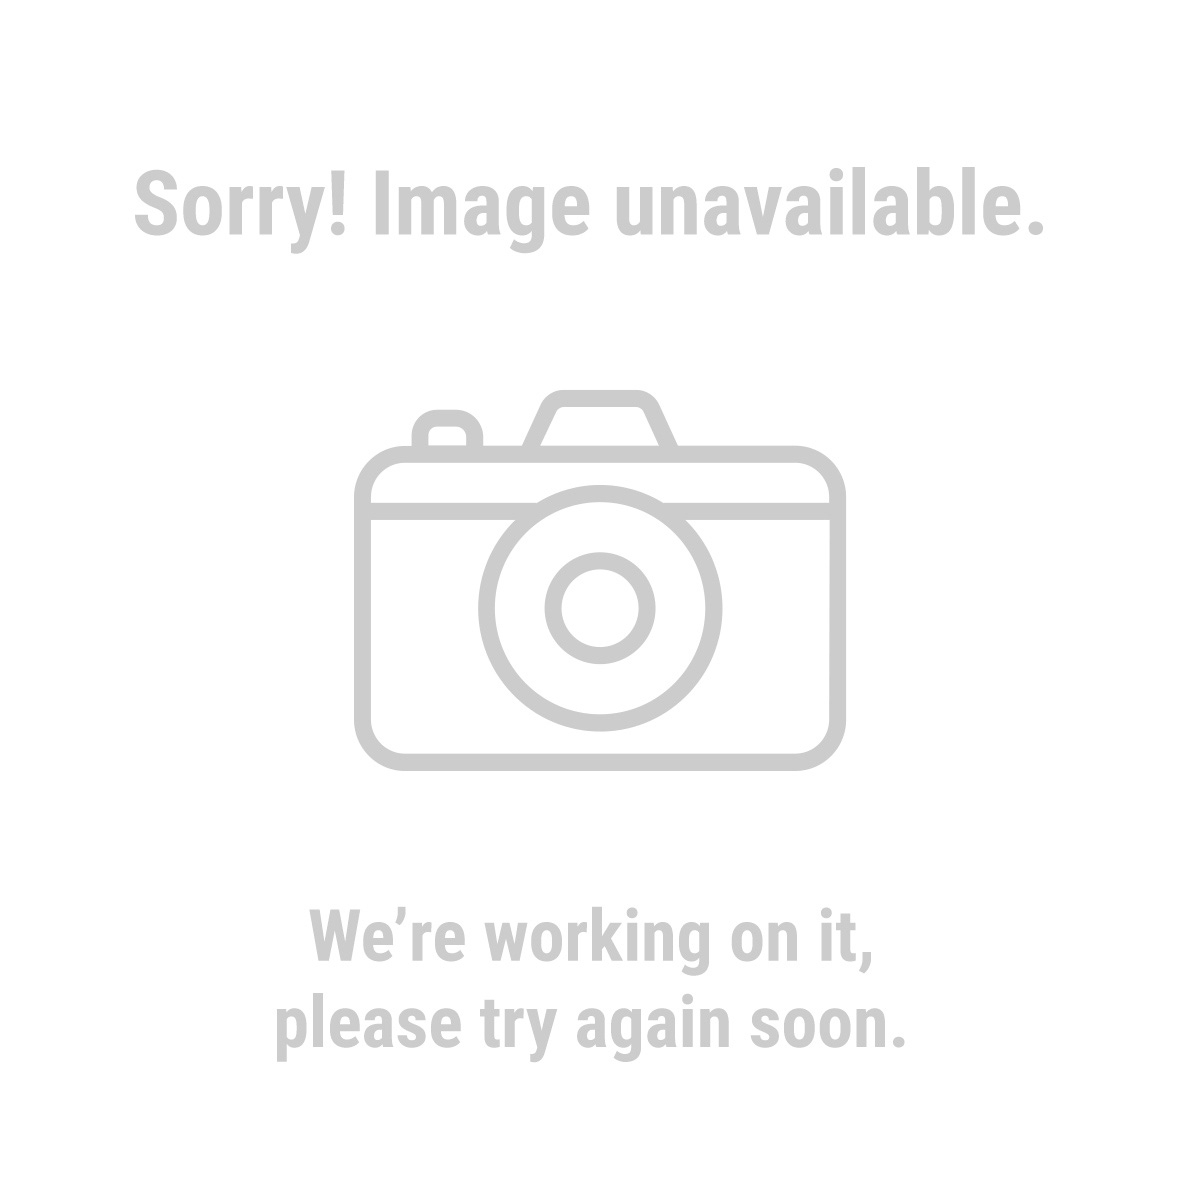 Central-Machinery 43389 16 Speed Floor Drill Press